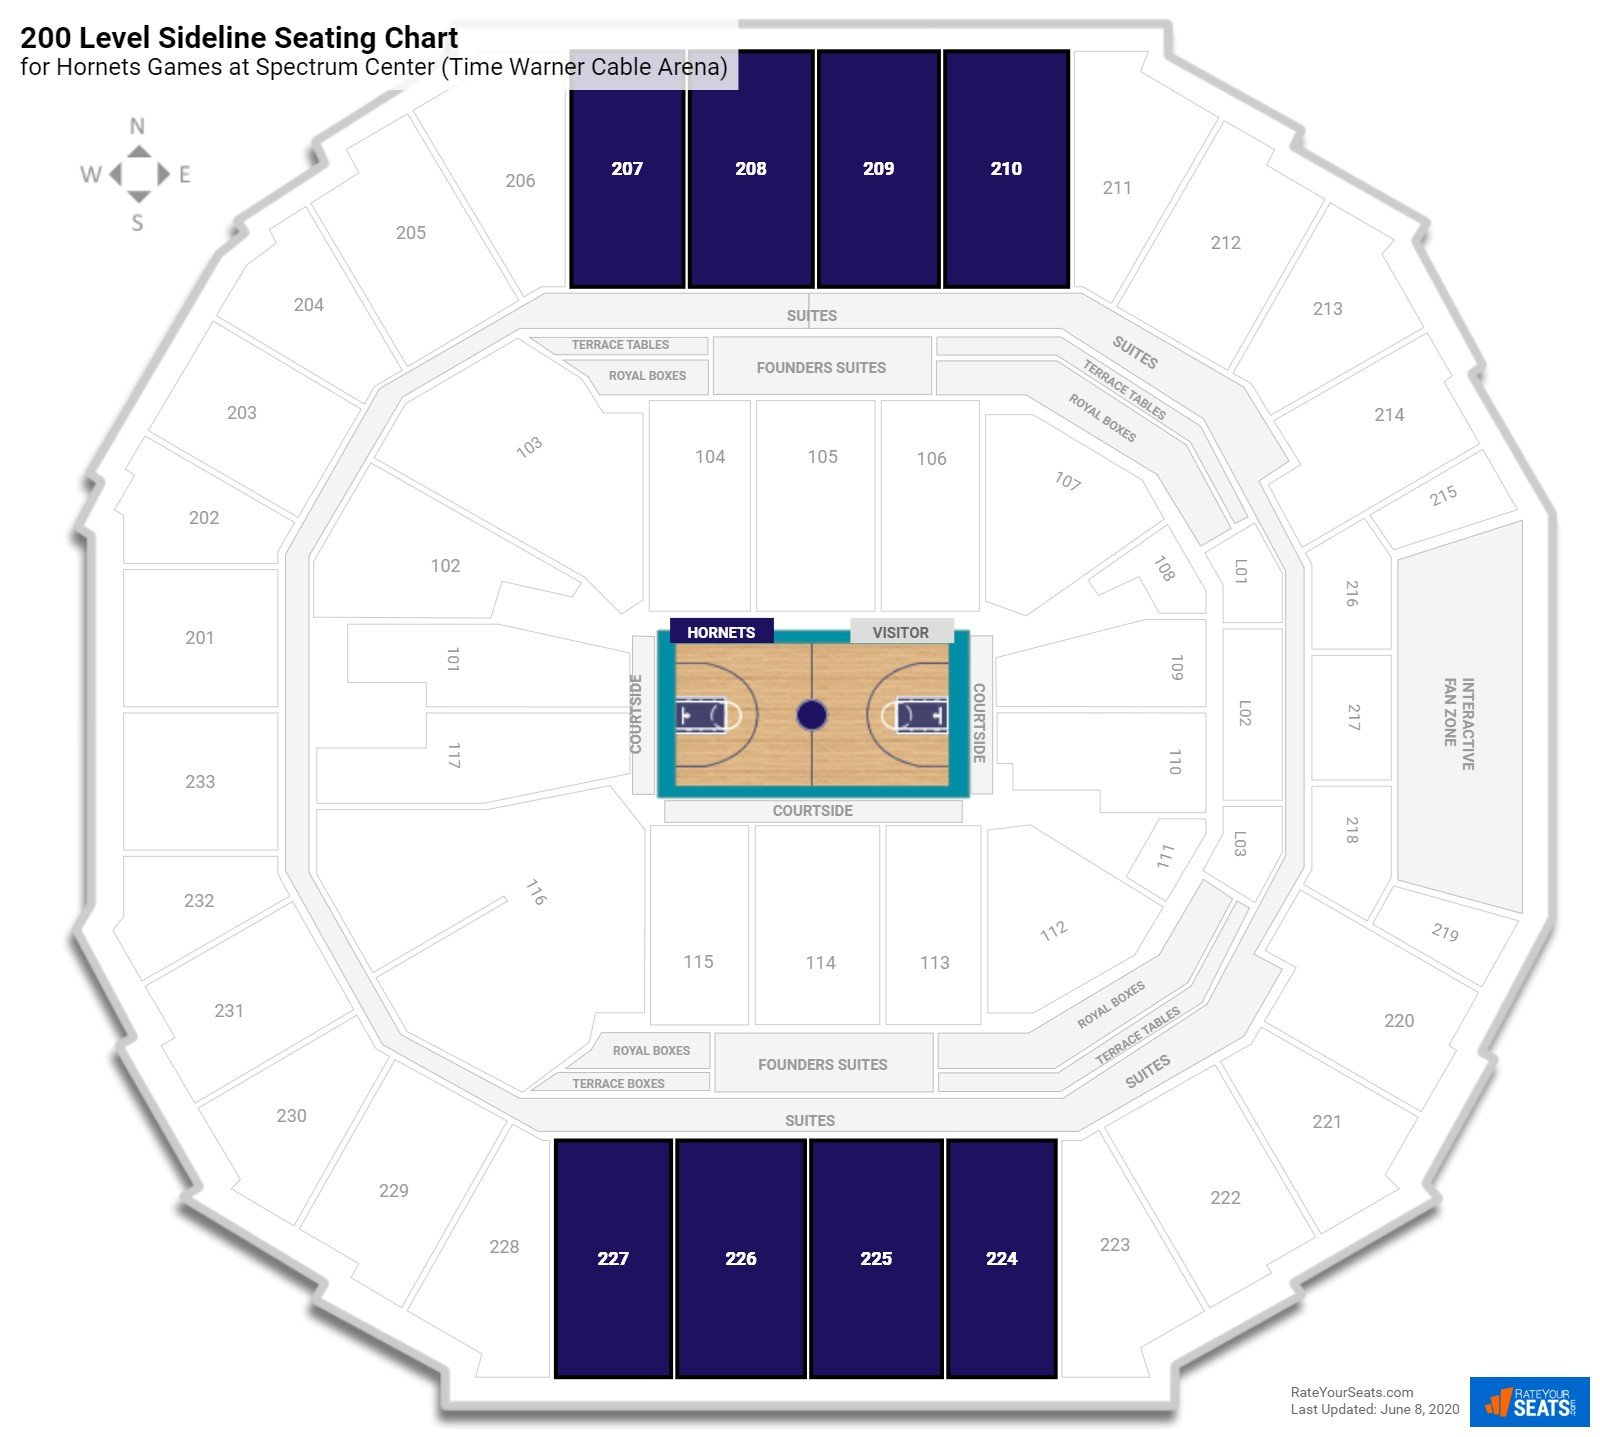 Spectrum Center (Time Warner Cable Arena) 200 Level Sideline seating chart